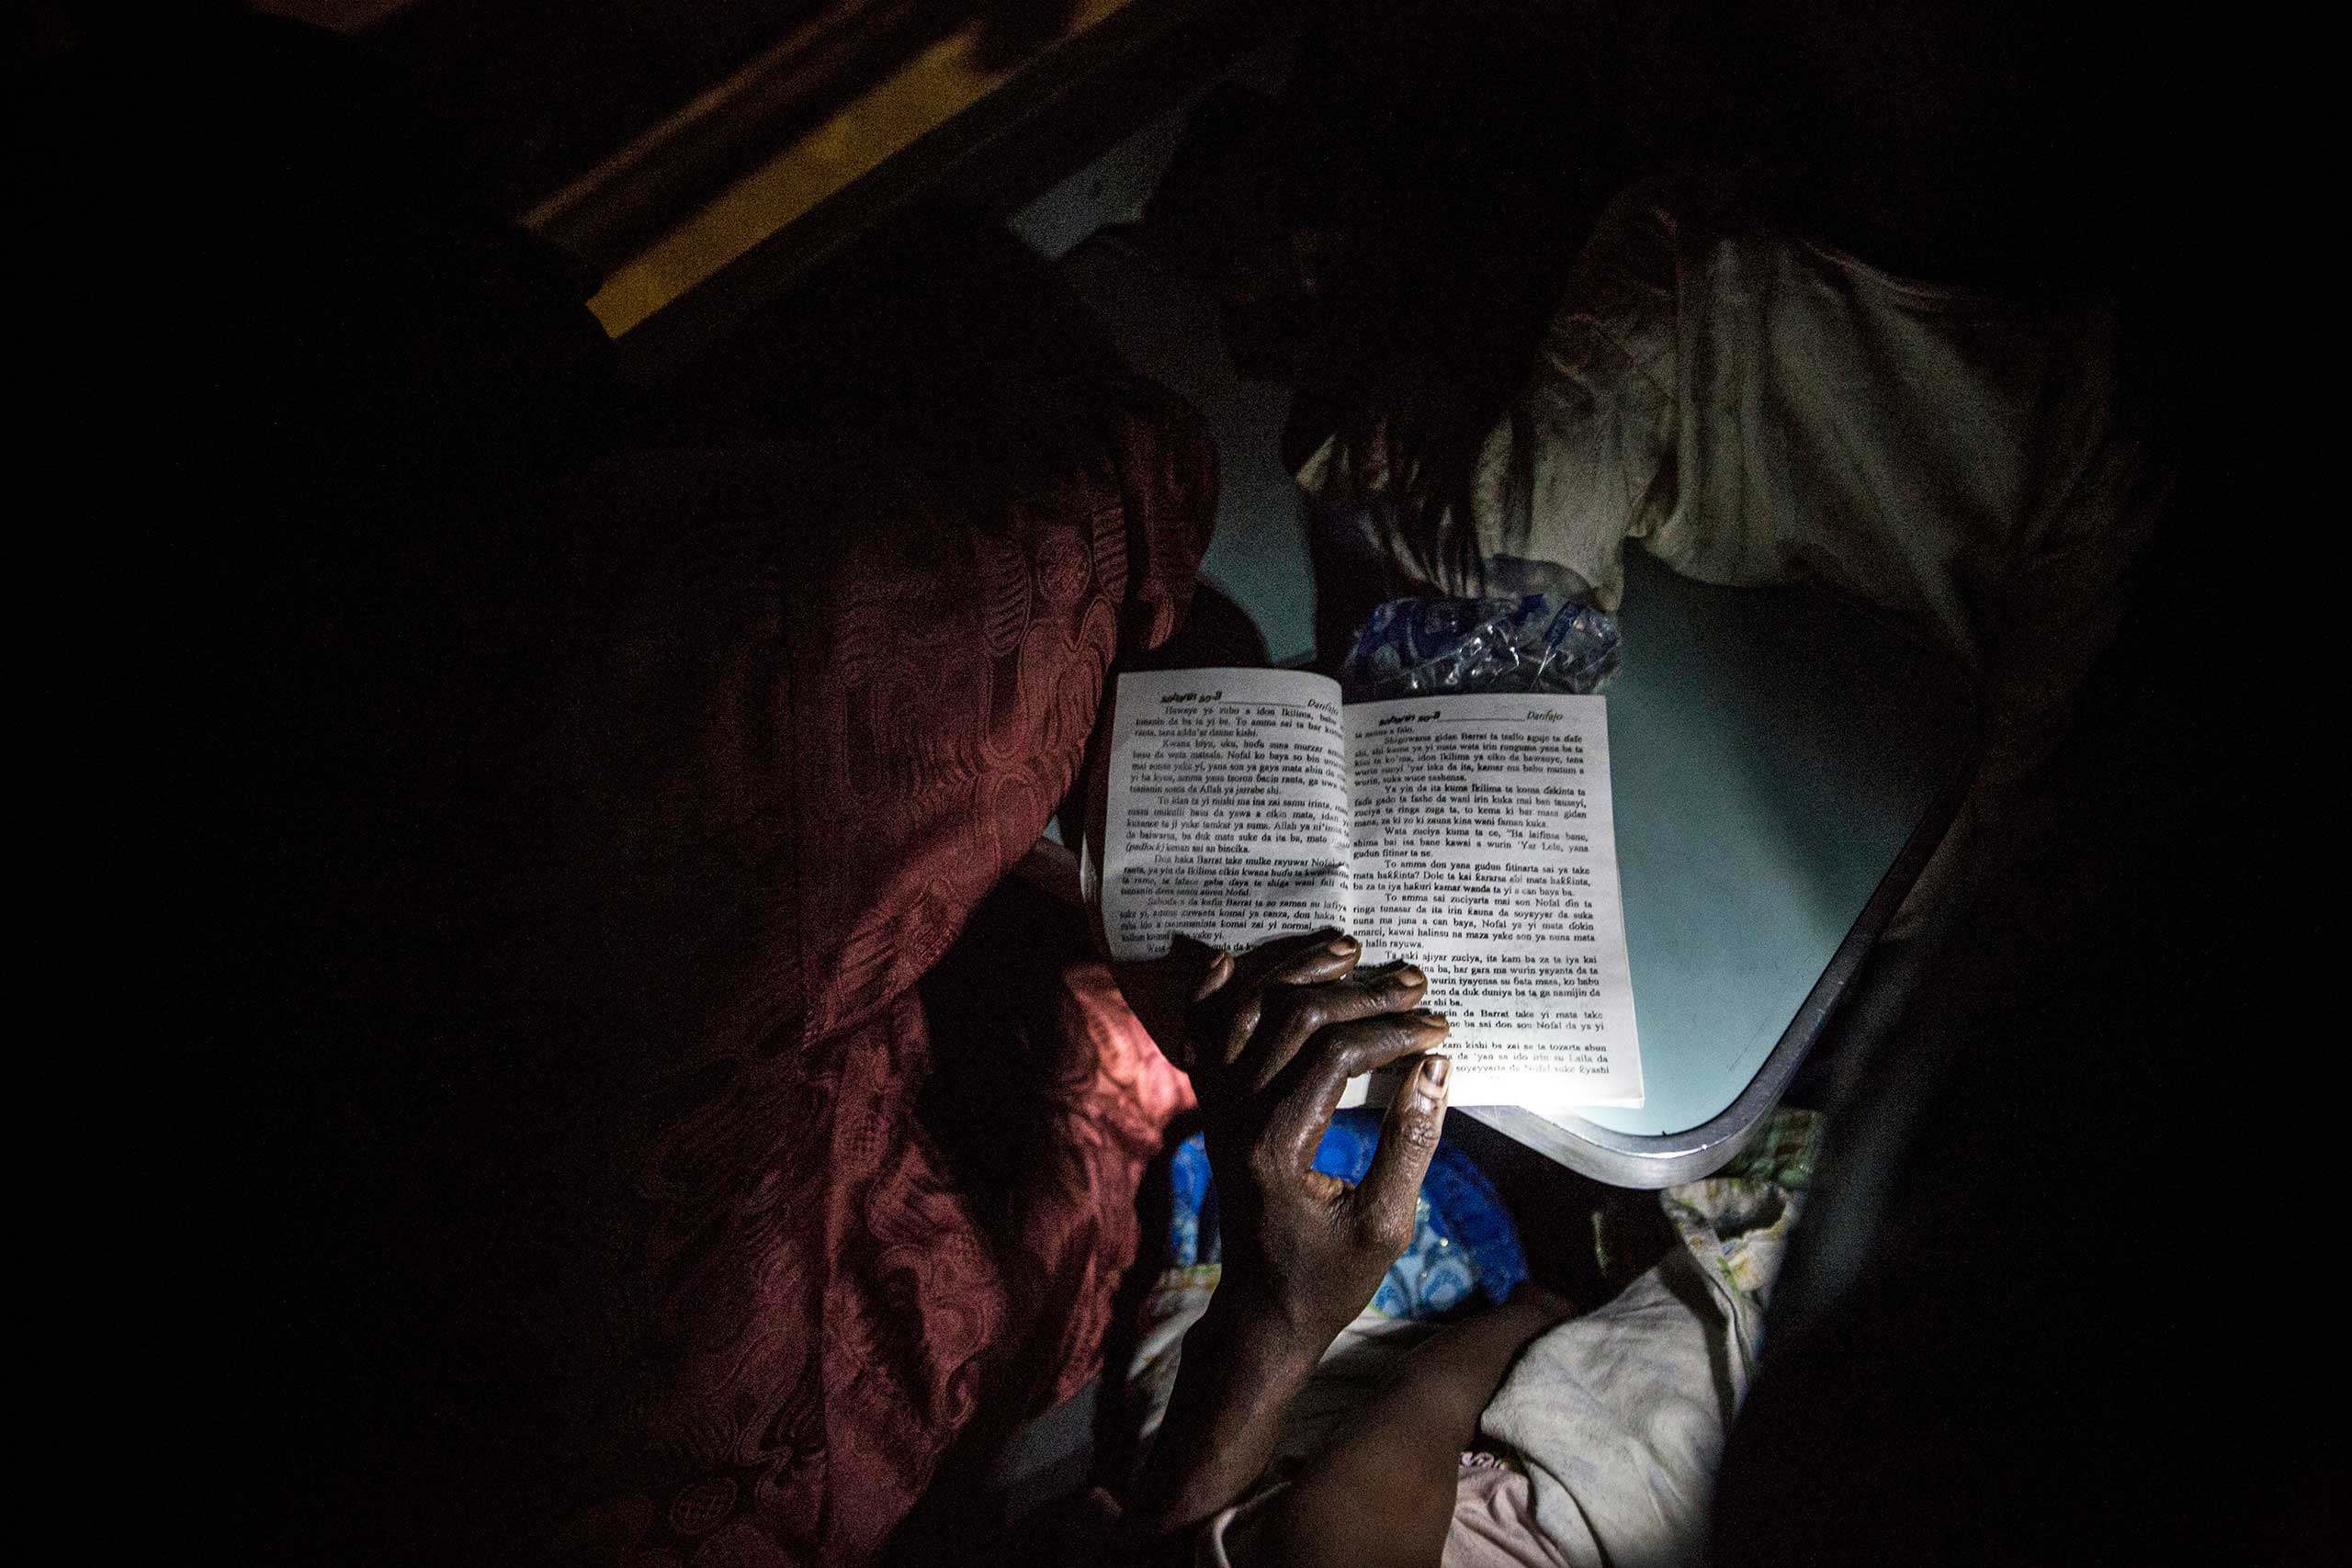 A woman reads a Hausa romance novel using the flashlight on her cell phone while on a train crossing Nigeria, Aug. 21, 2015.